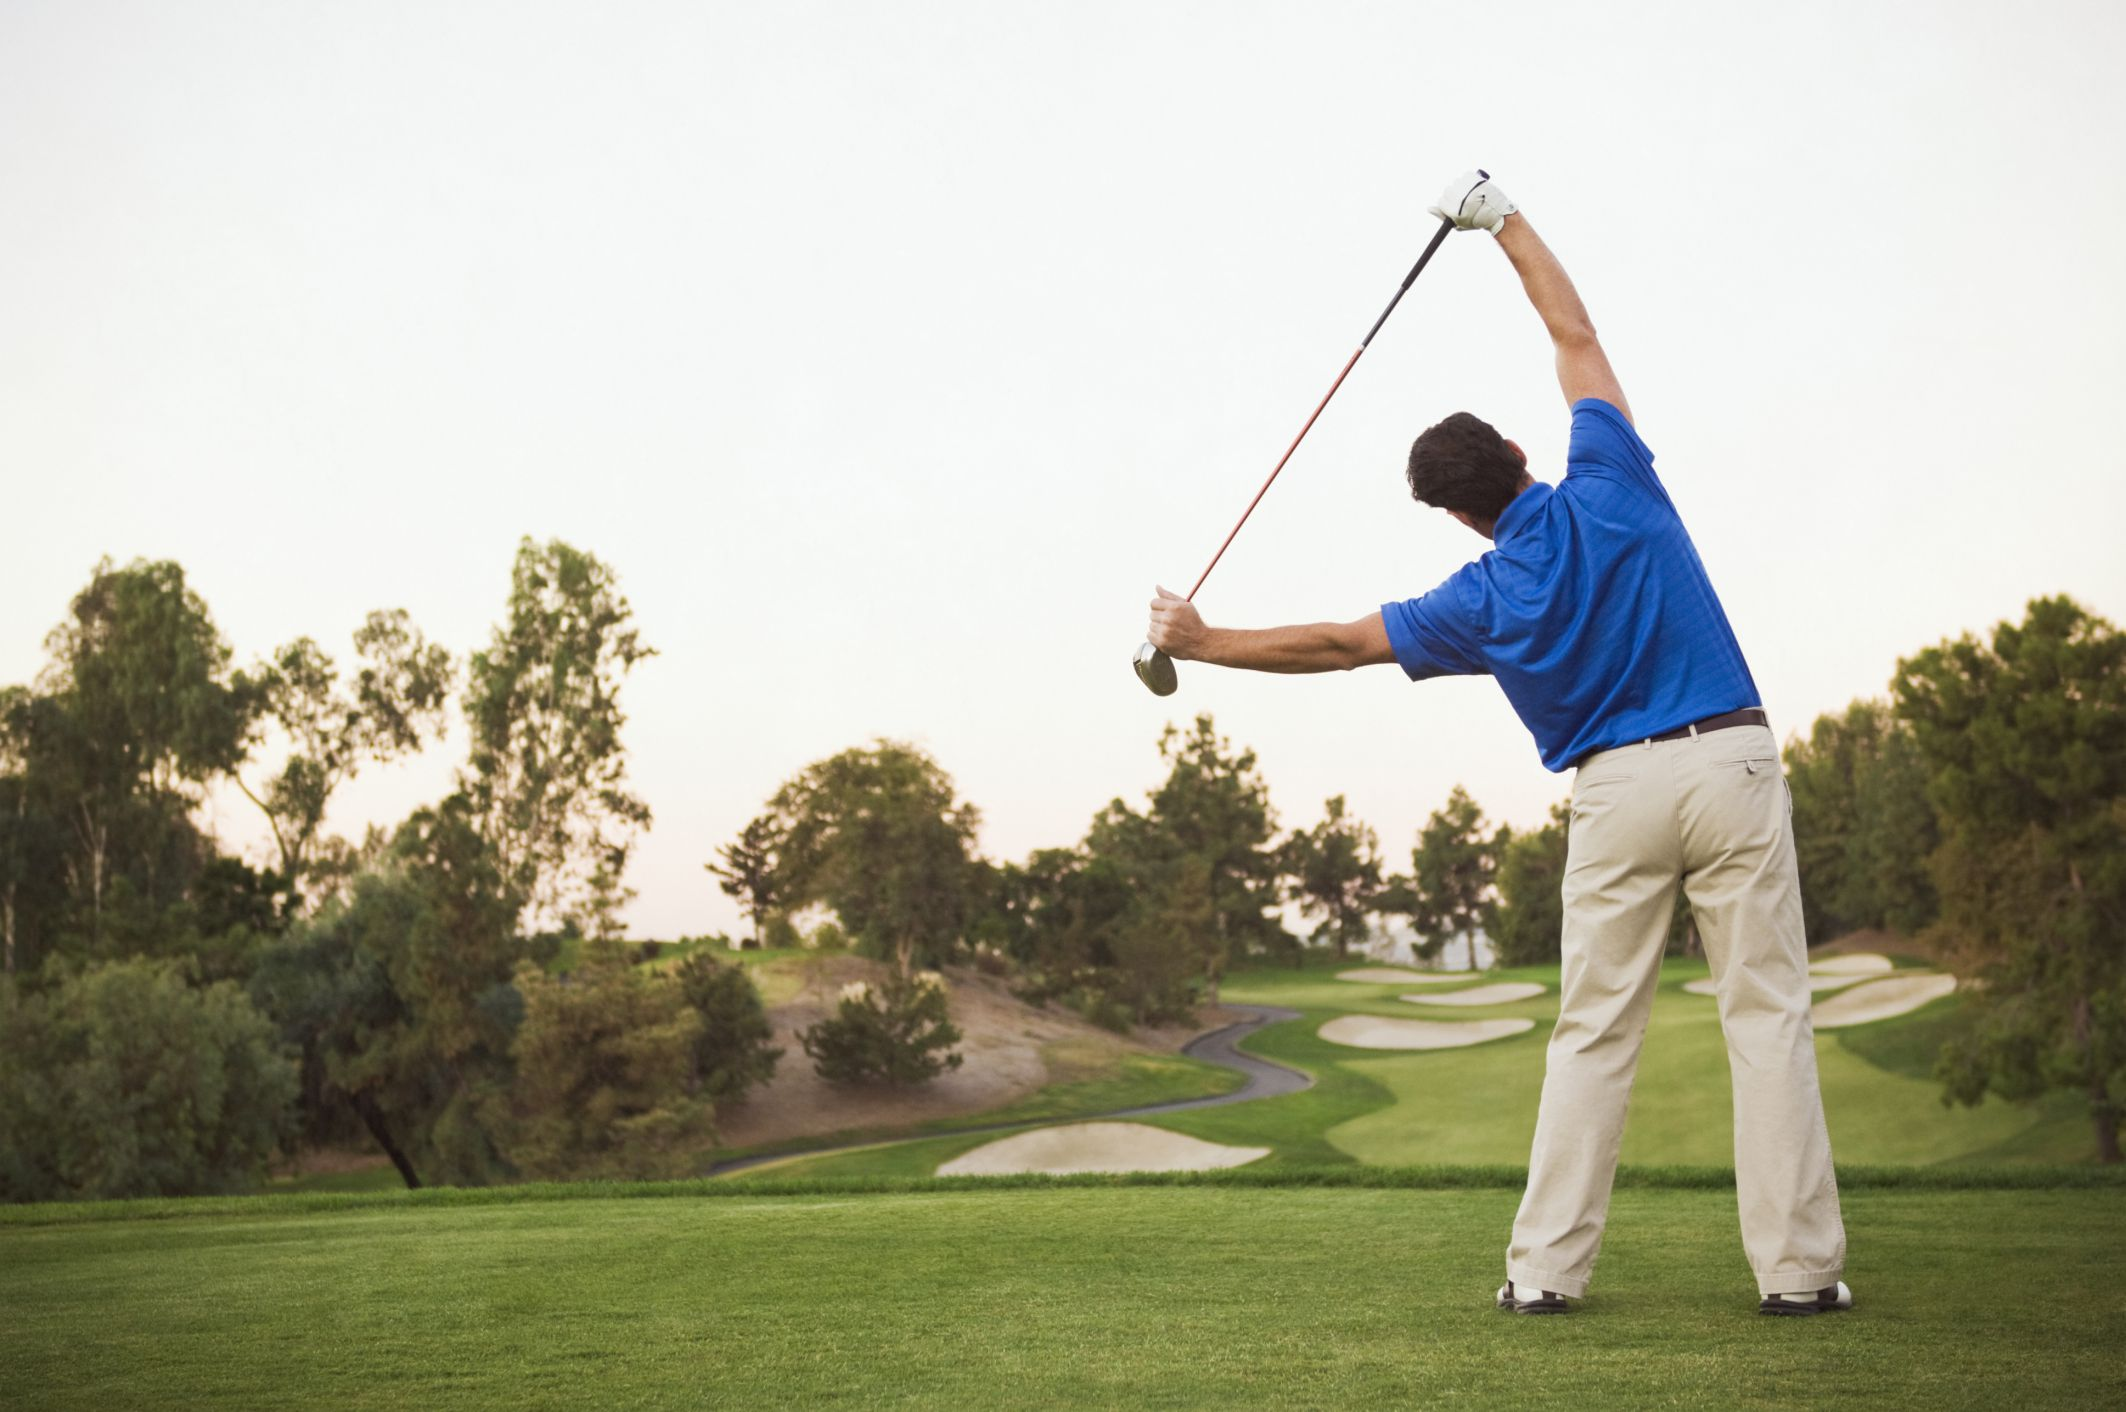 Distance Power Golf Tips Swing Strength and Equipment